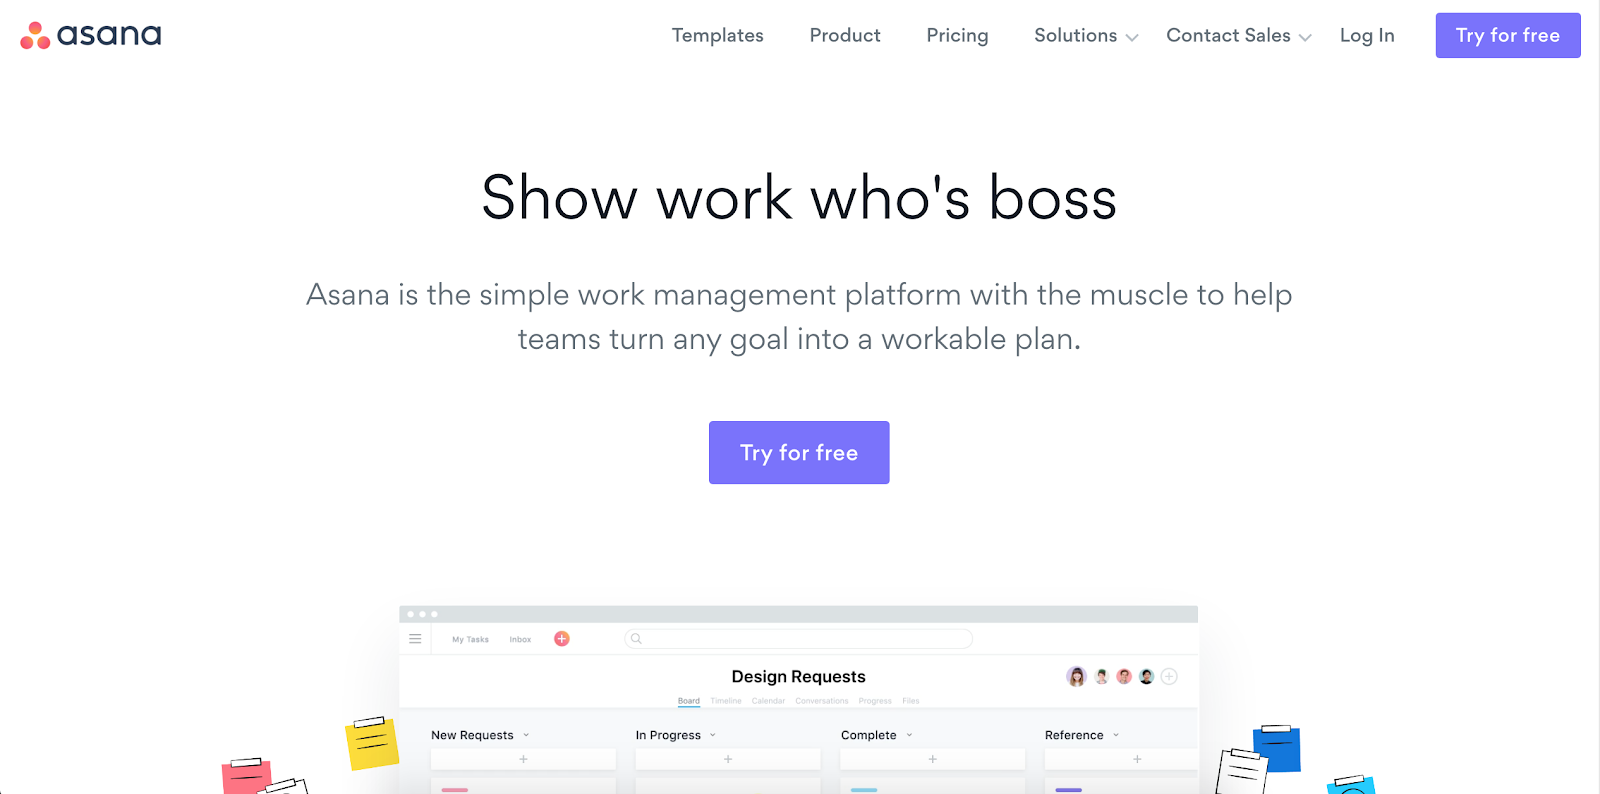 Top Marketing Tool Example #6 - Asana | 16 Powerful Marketing Tools You Haven't Considered (But Probably Should)